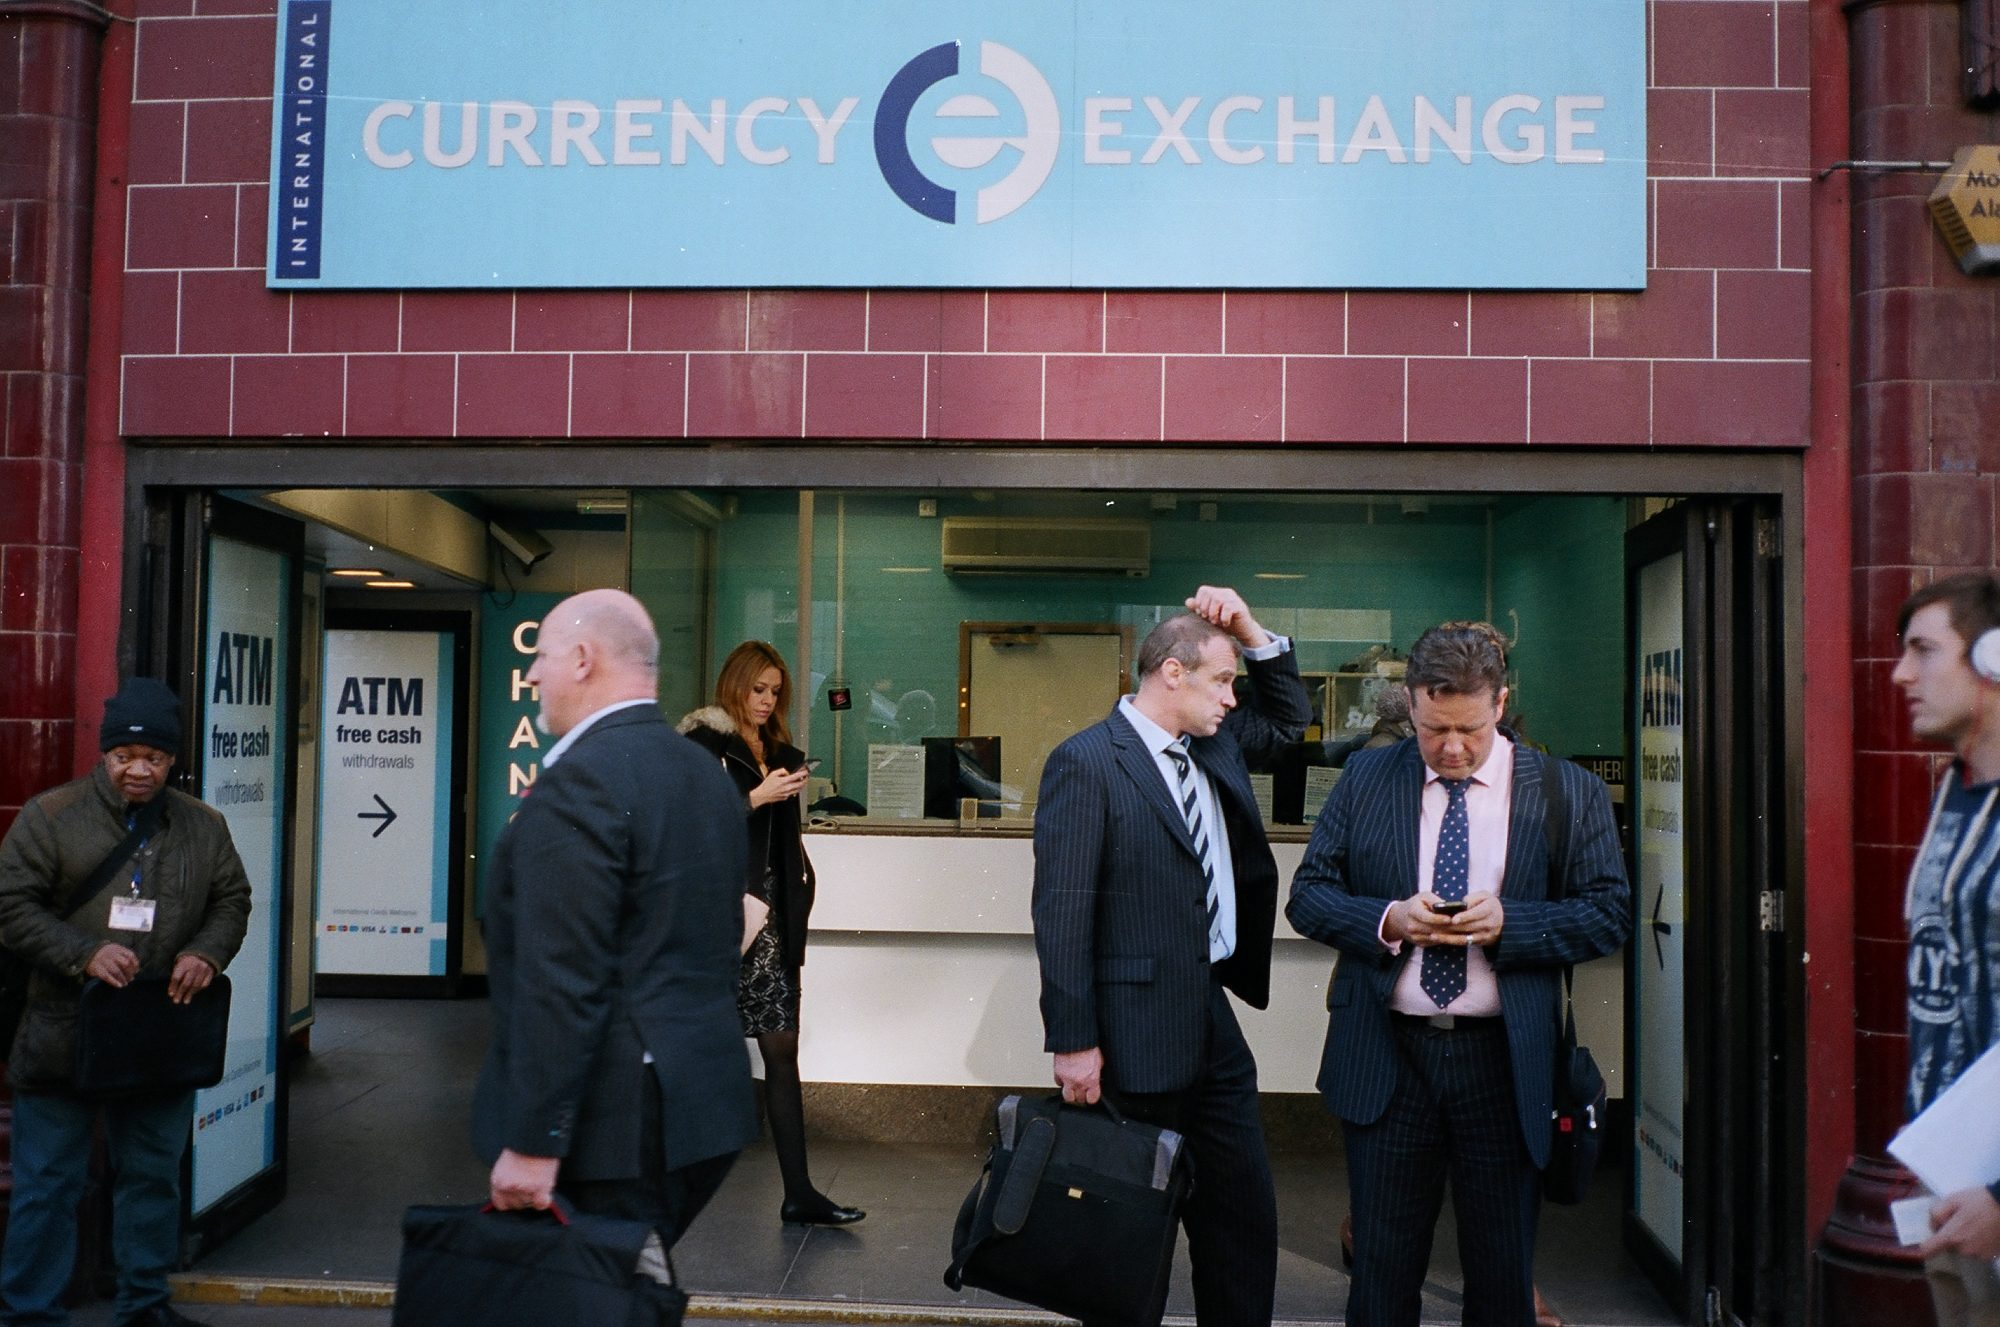 Currency exchange, suits, 2014. London.